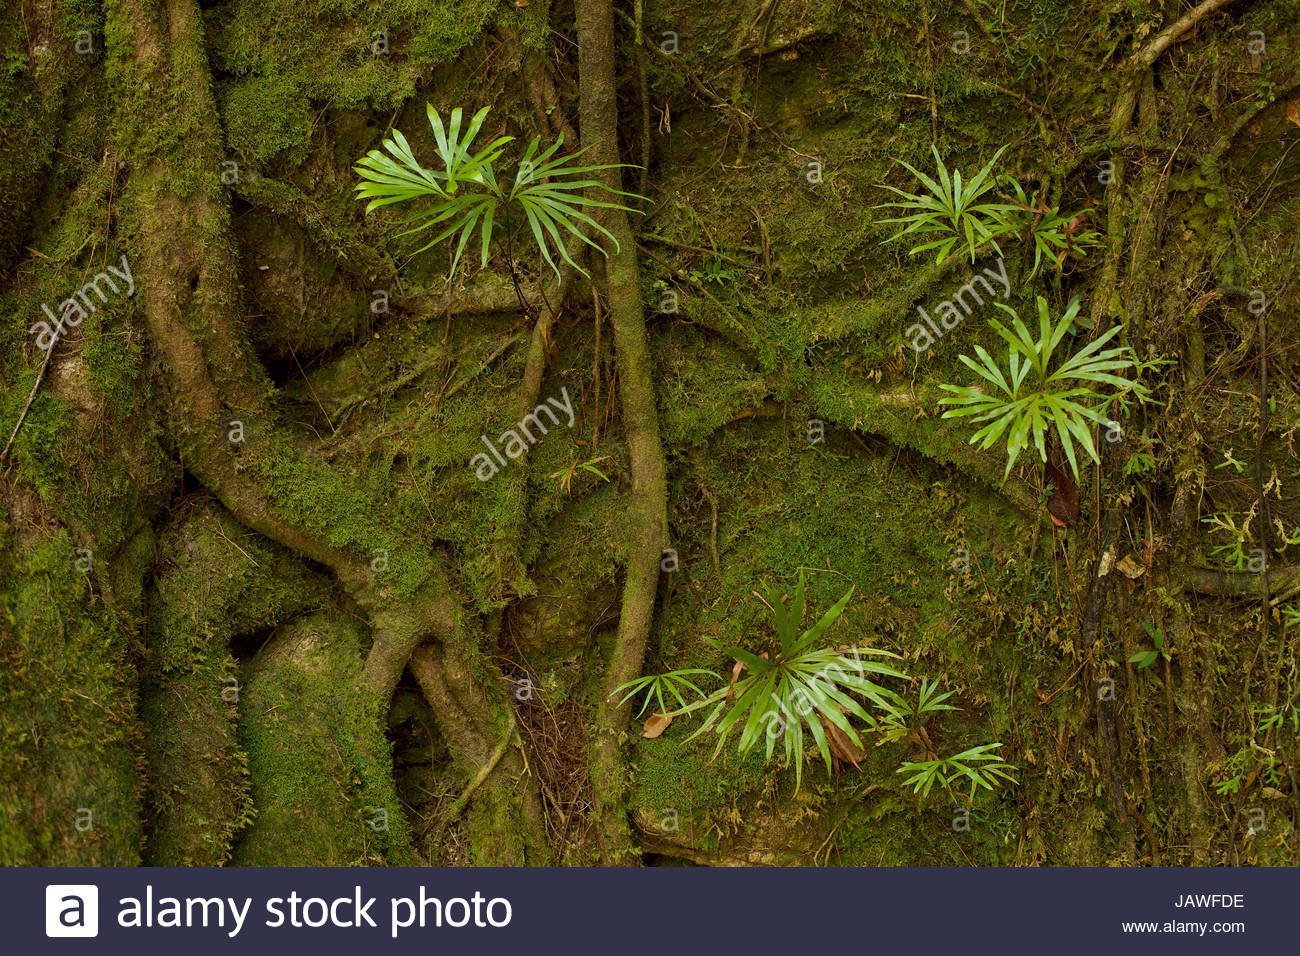 Ferns on a moss covered cliff in Gunung Palung National Park. - Stock Image